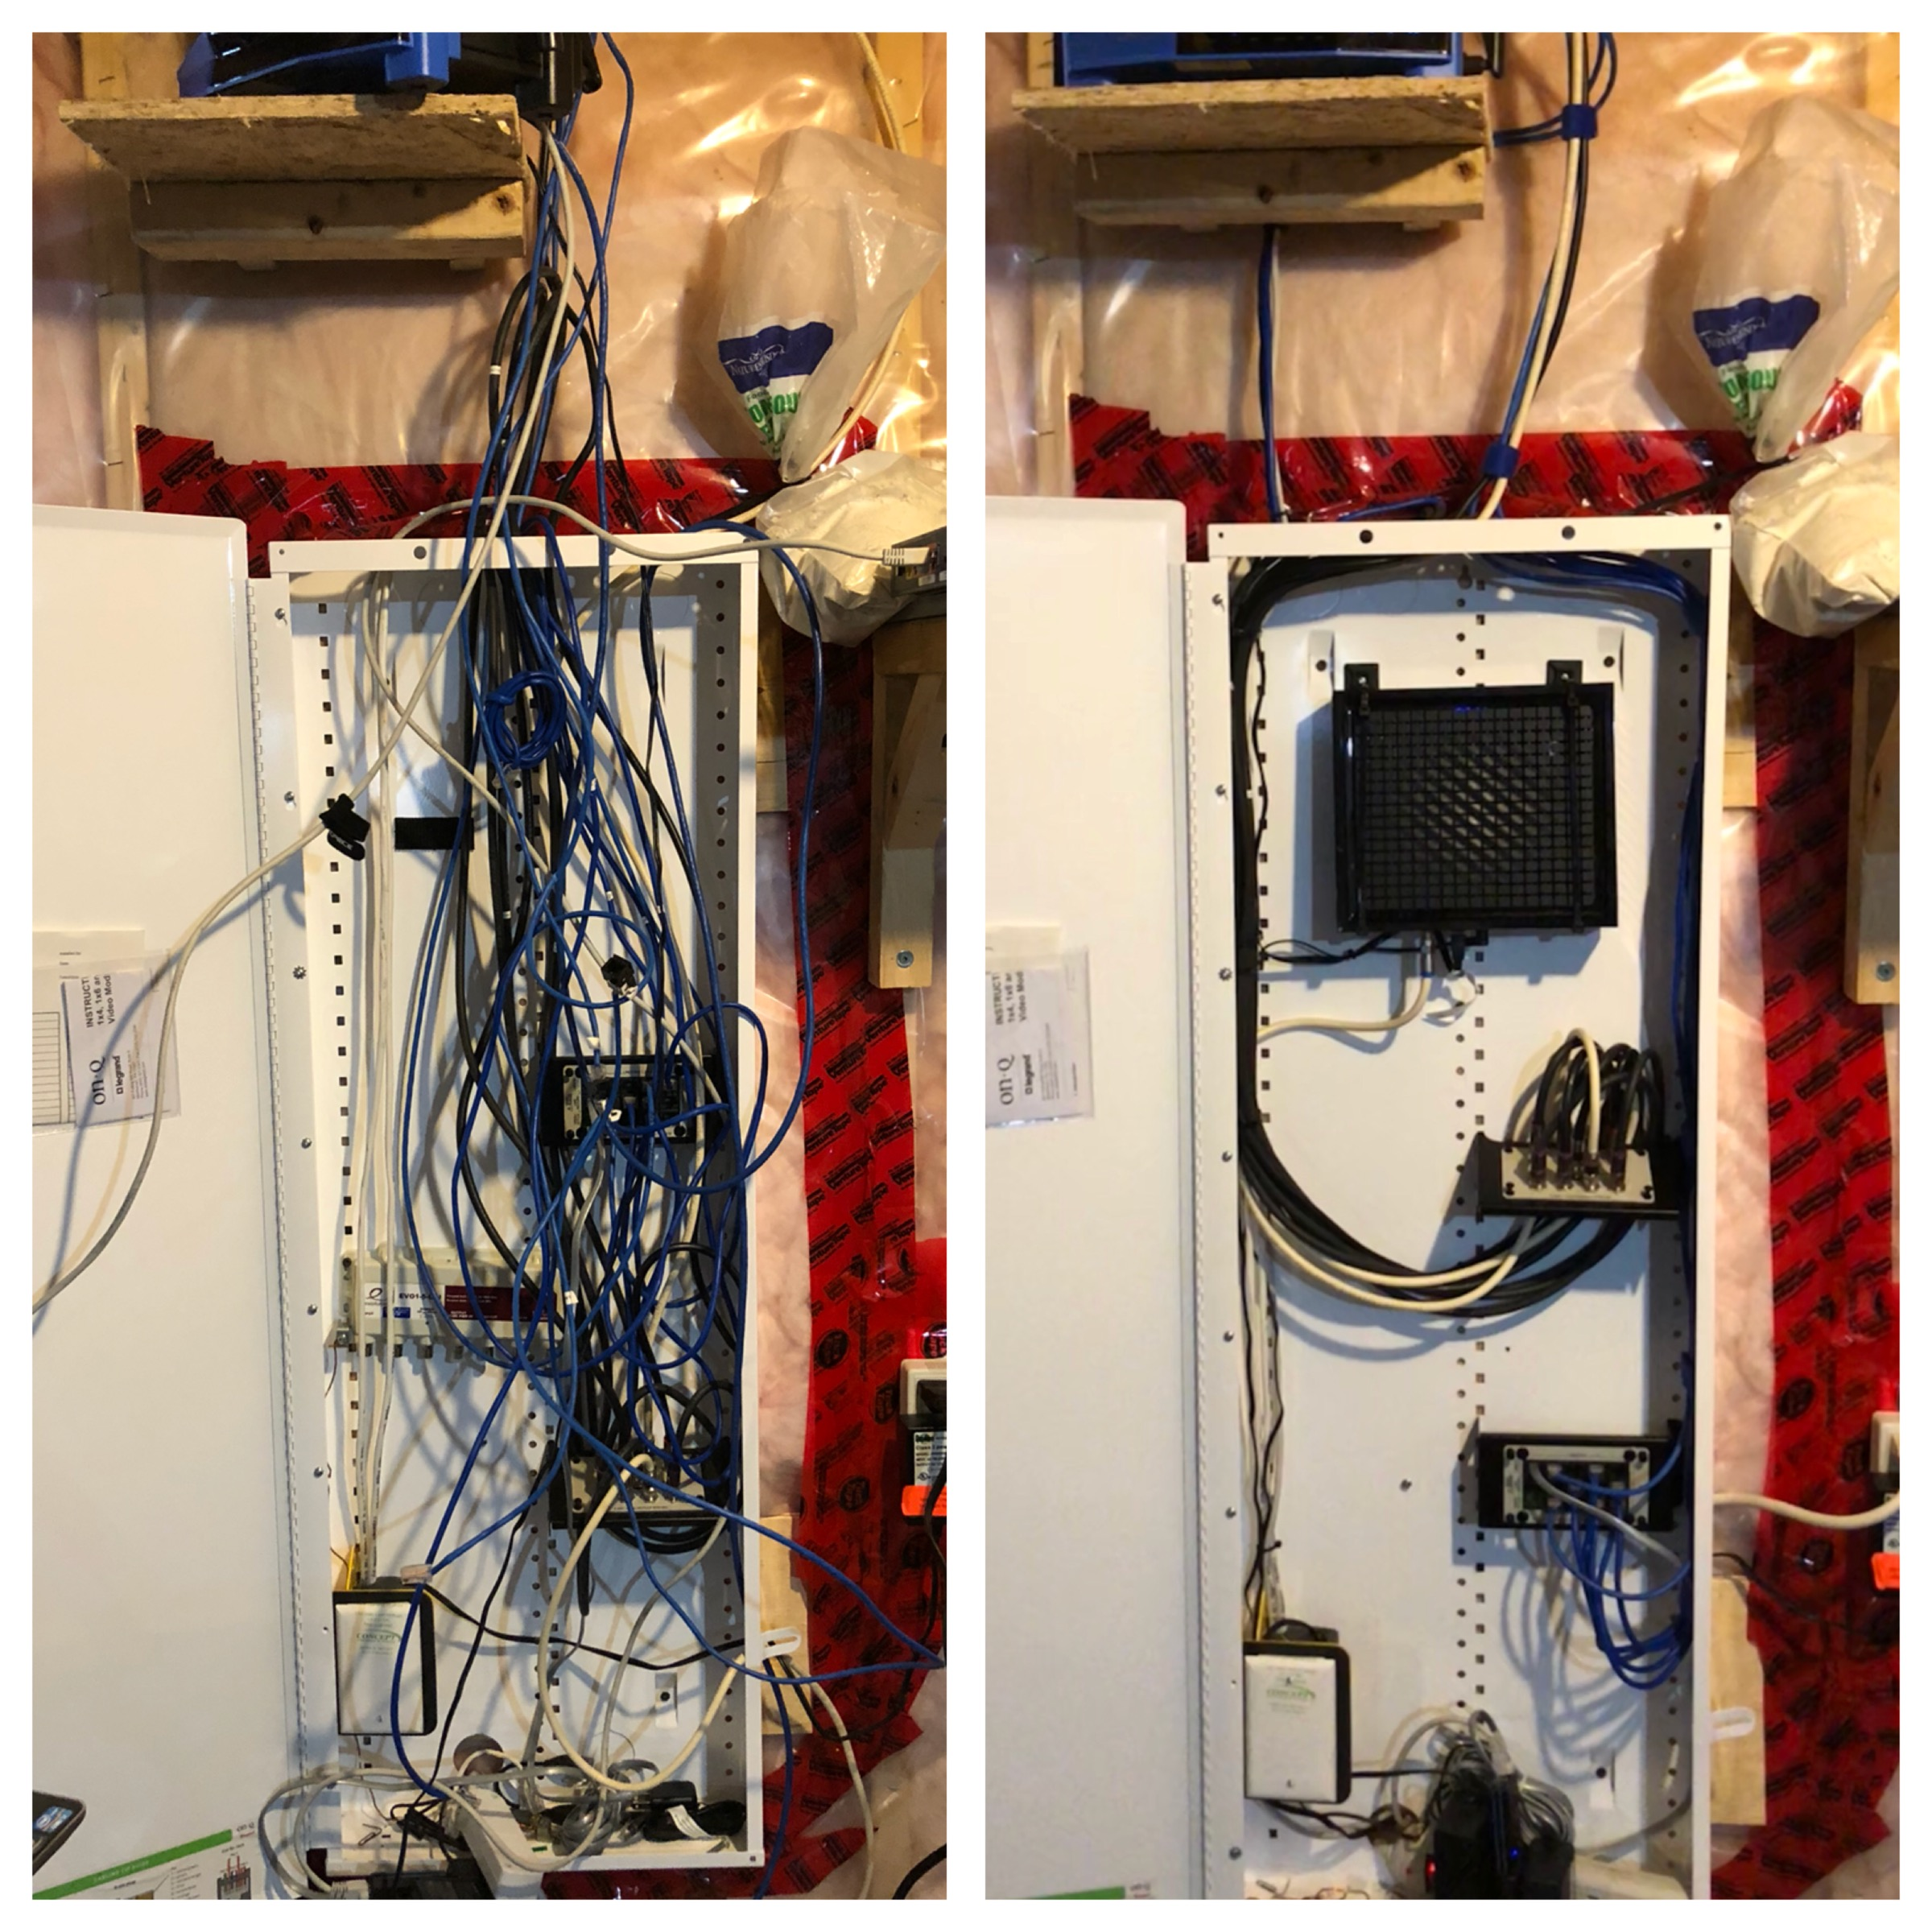 Tired of Messy Wiring? - Just as in your living room, messy wiring from electronics in any room in your home can be unsightly and confusing.  Let's make your electronics something worth showing off!